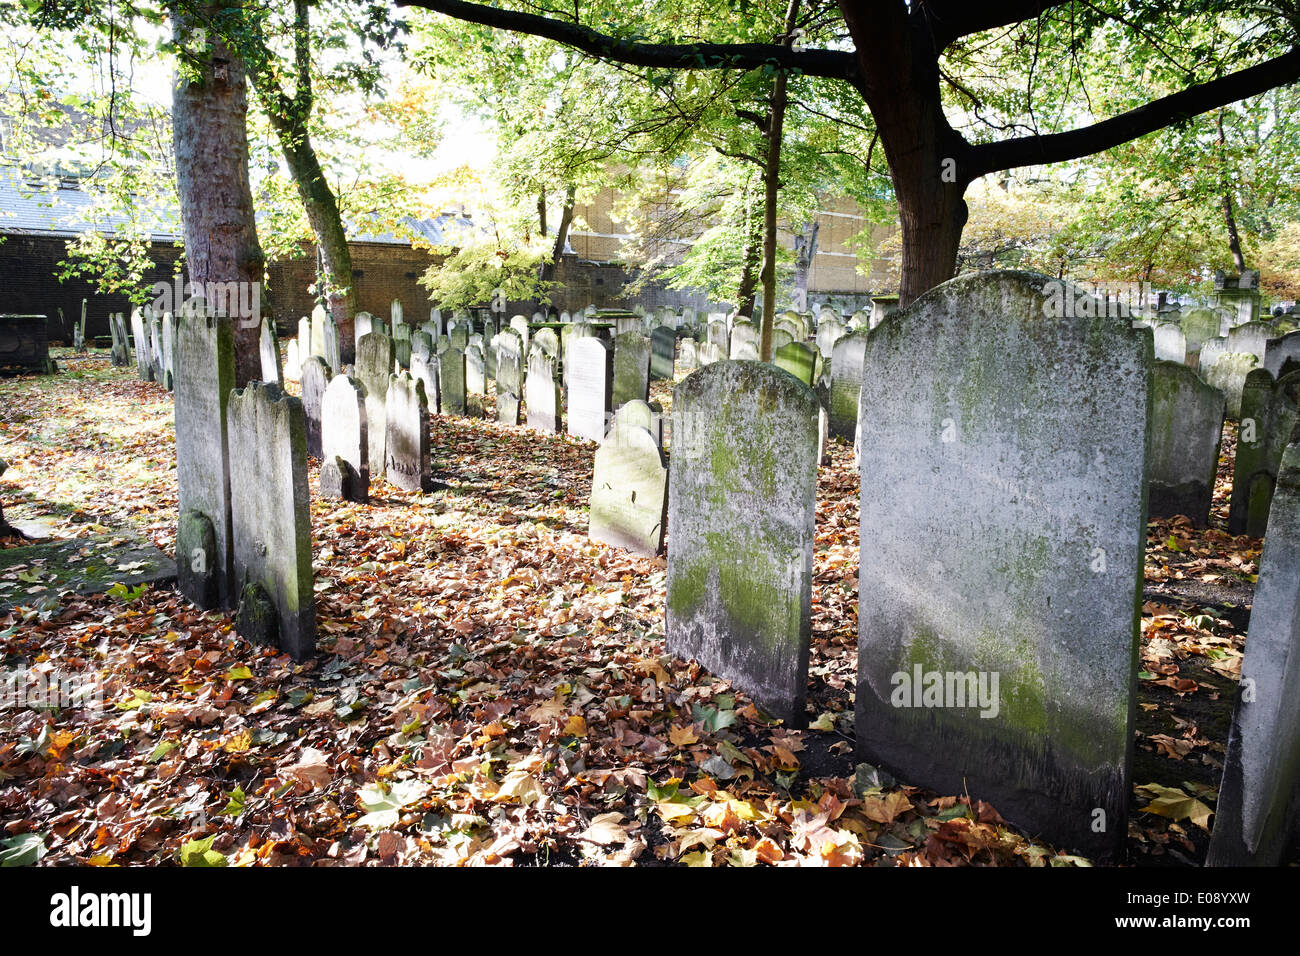 Gravestones at Bunhill Fields cemetery, London, UK - Stock Image